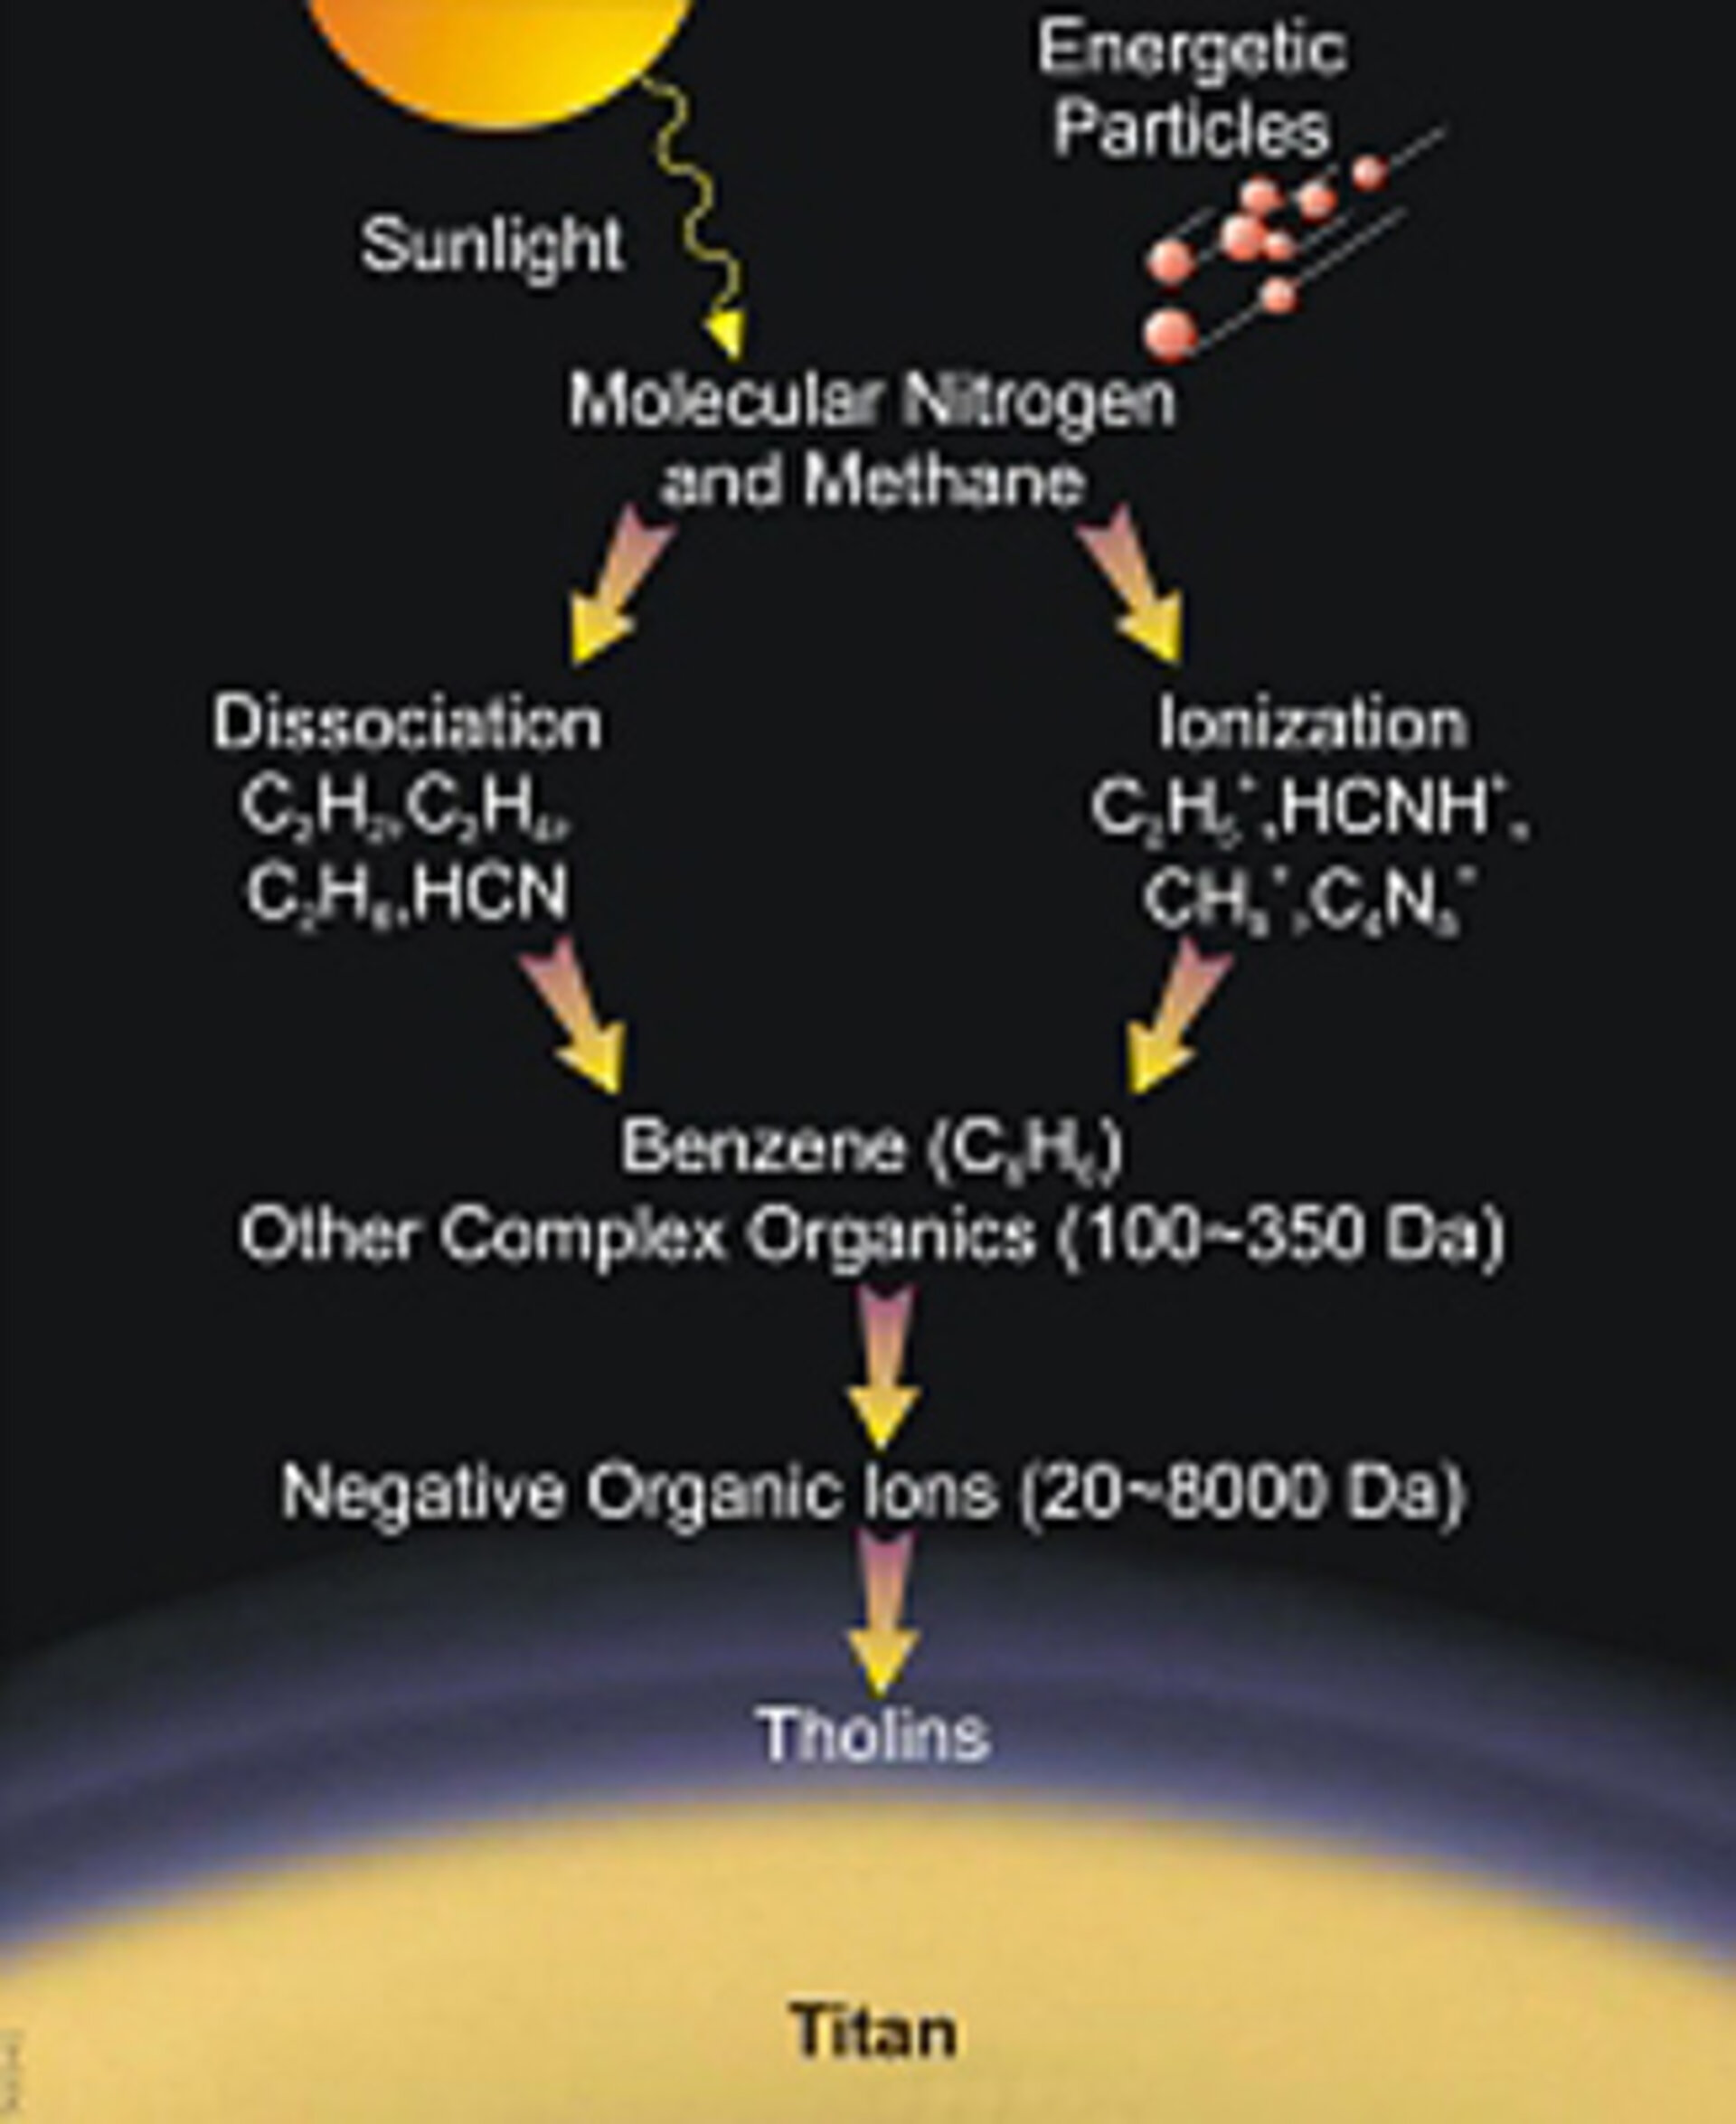 Tholin formation in Titan's upper atmosphere